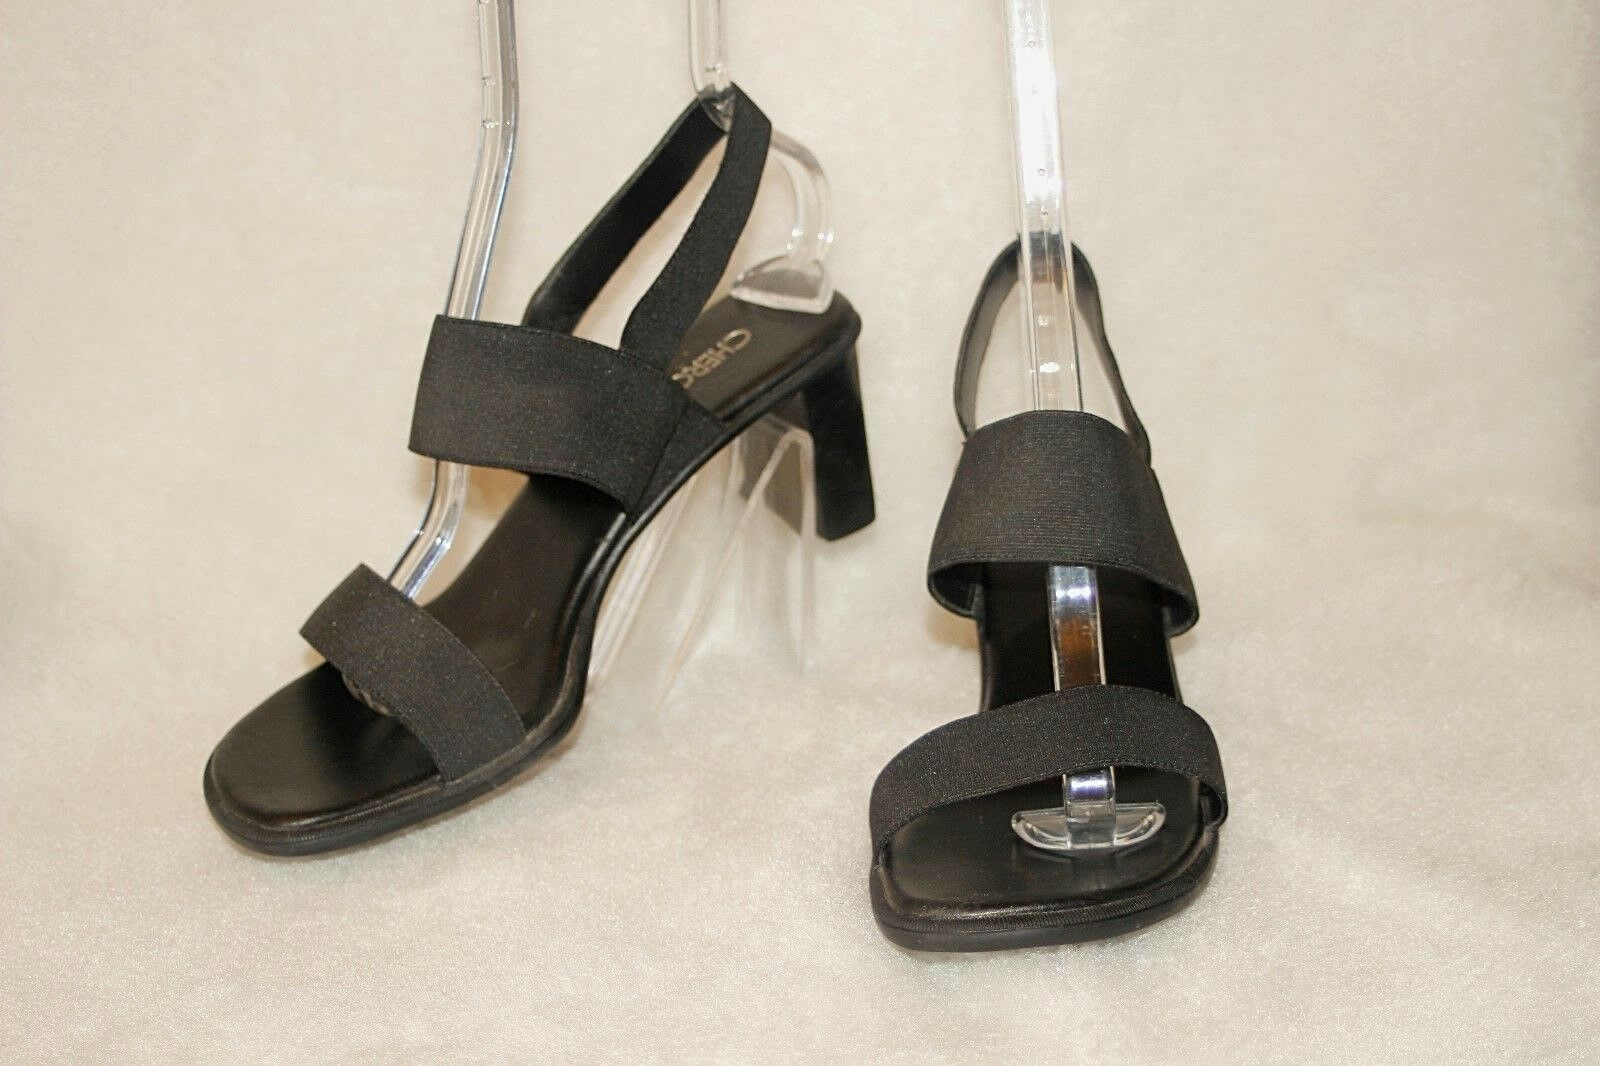 CHEROKEE ~ Black Fabric Comfy Sandals GOOD Sz 8.5 * VERY GOOD Sandals COND. f57141